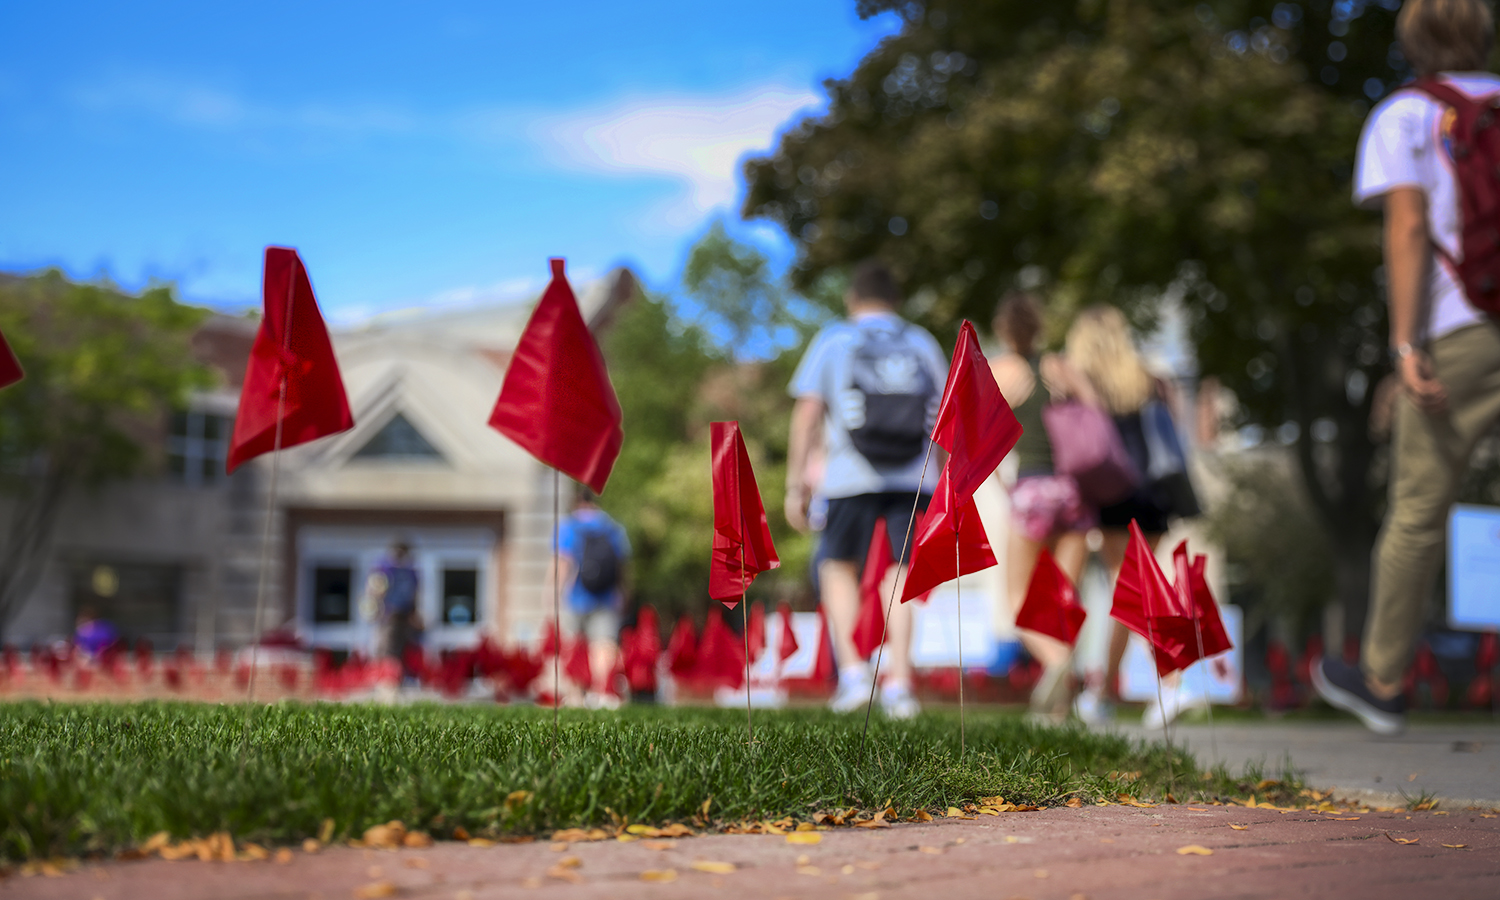 In conjunction with the national Red Flag Campaign, flags placed in front of the Scandling Campus Center this October represent dating violence prevention and awareness.